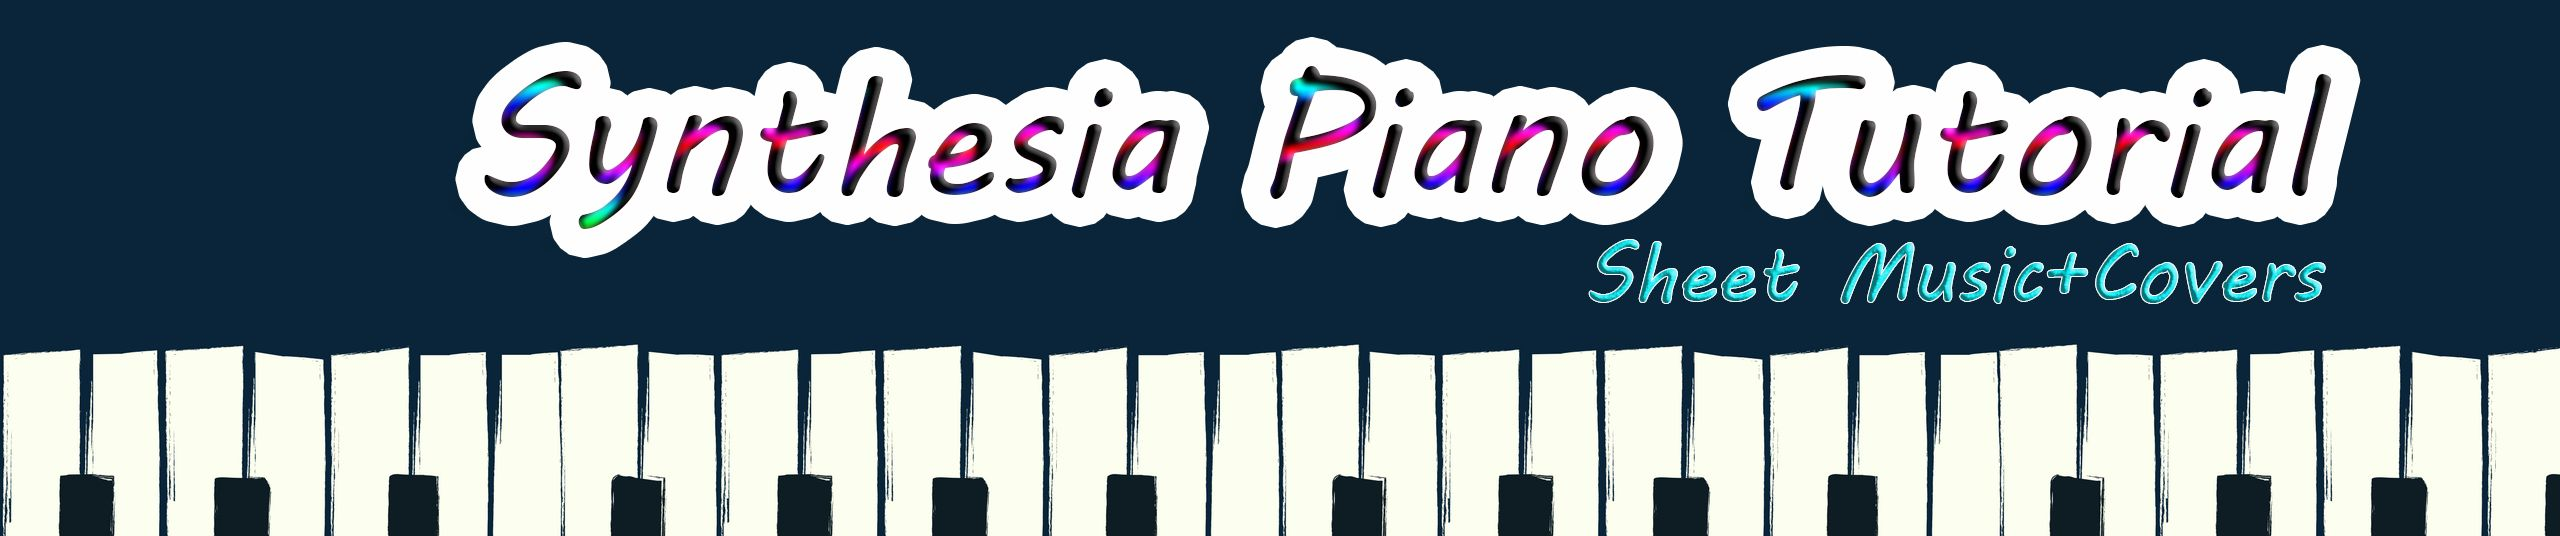 Synthesia Piano Music | Free Listening on SoundCloud